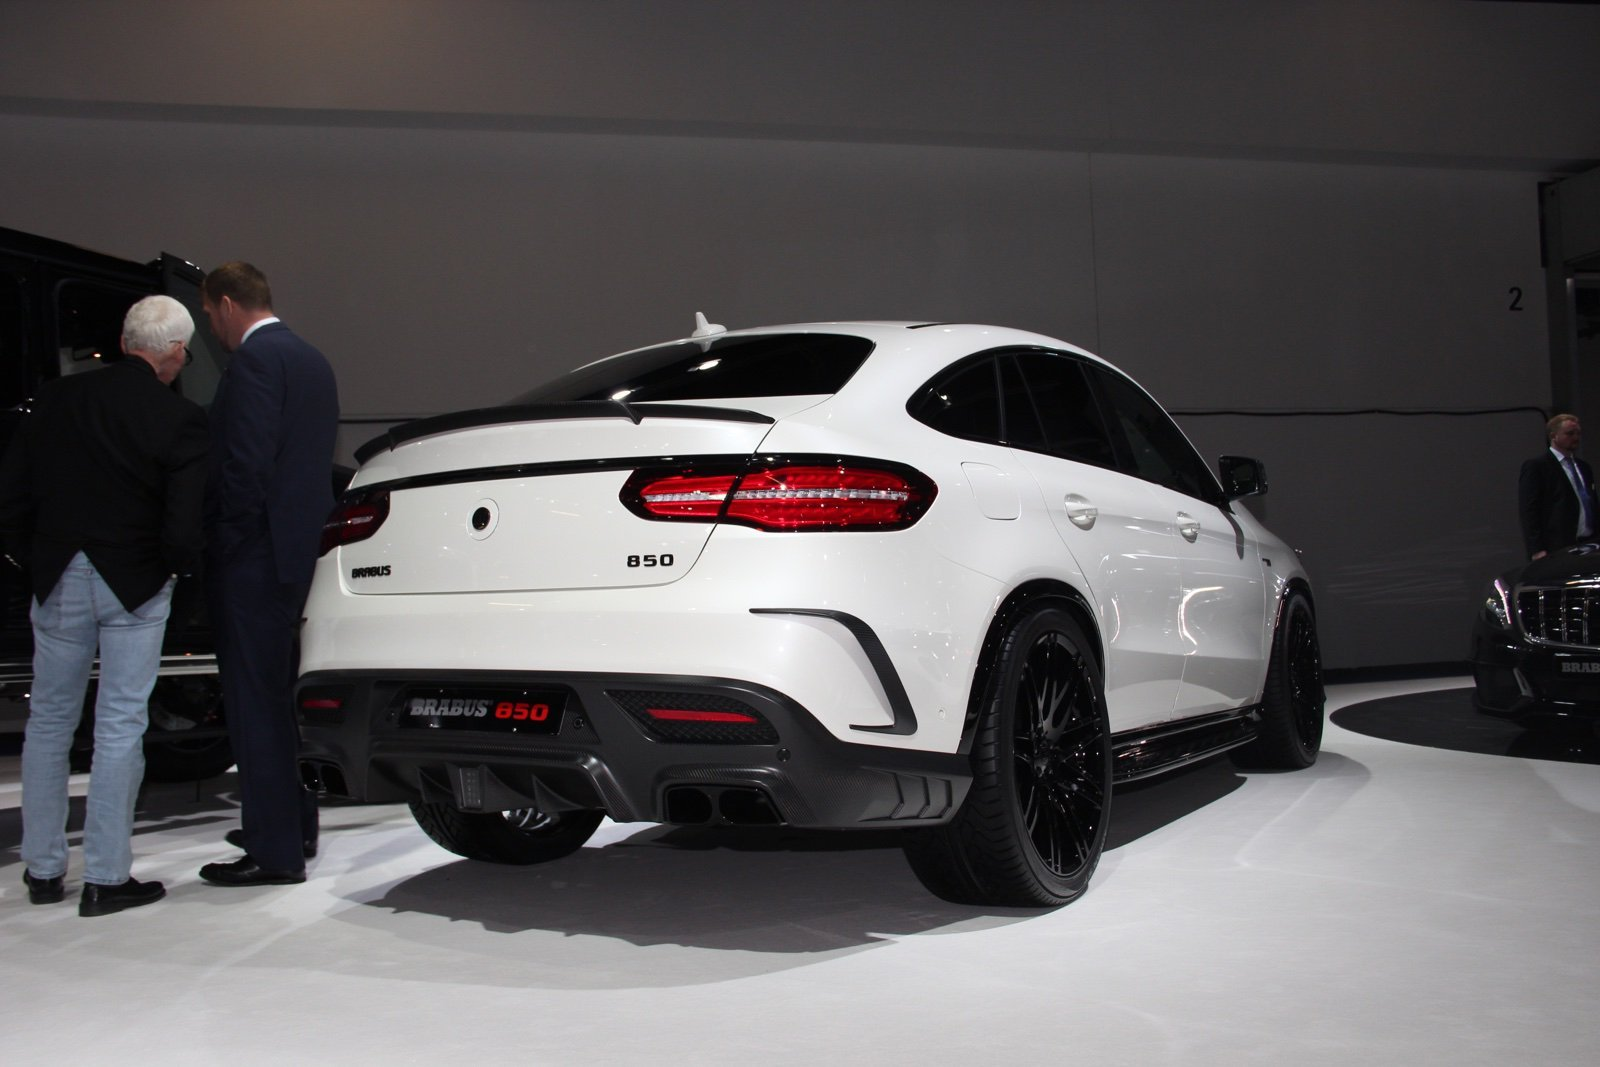 brabus mercedes benz gle 850 cars 2015 wallpaper 1600x1067 804366 wallpaperup. Black Bedroom Furniture Sets. Home Design Ideas